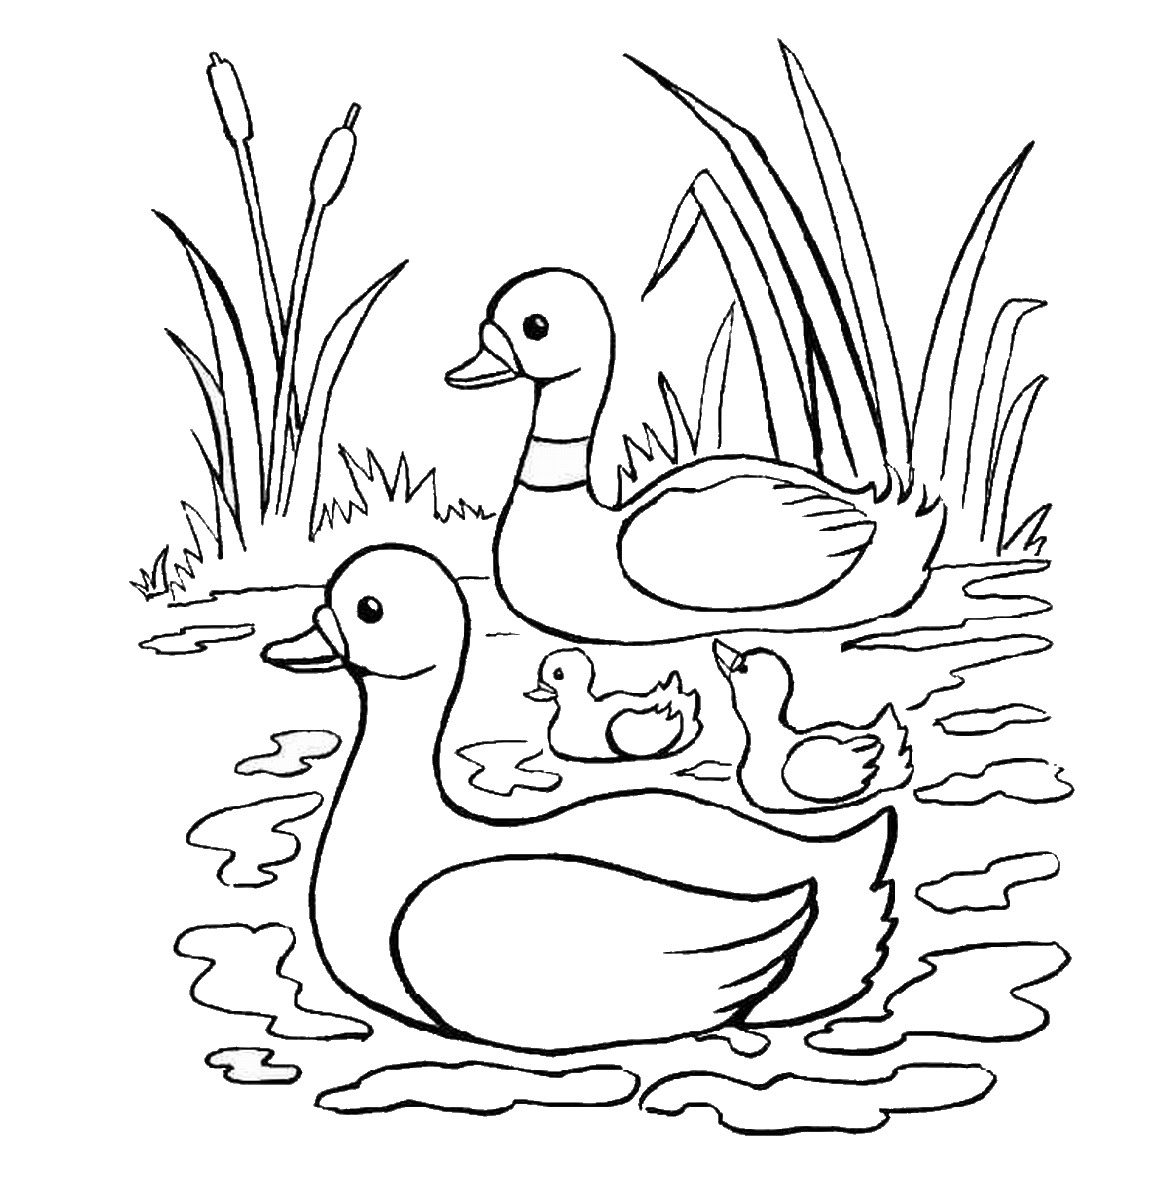 duck coloring sheets printable printable duck coloring pages for kids cool2bkids duck printable coloring sheets